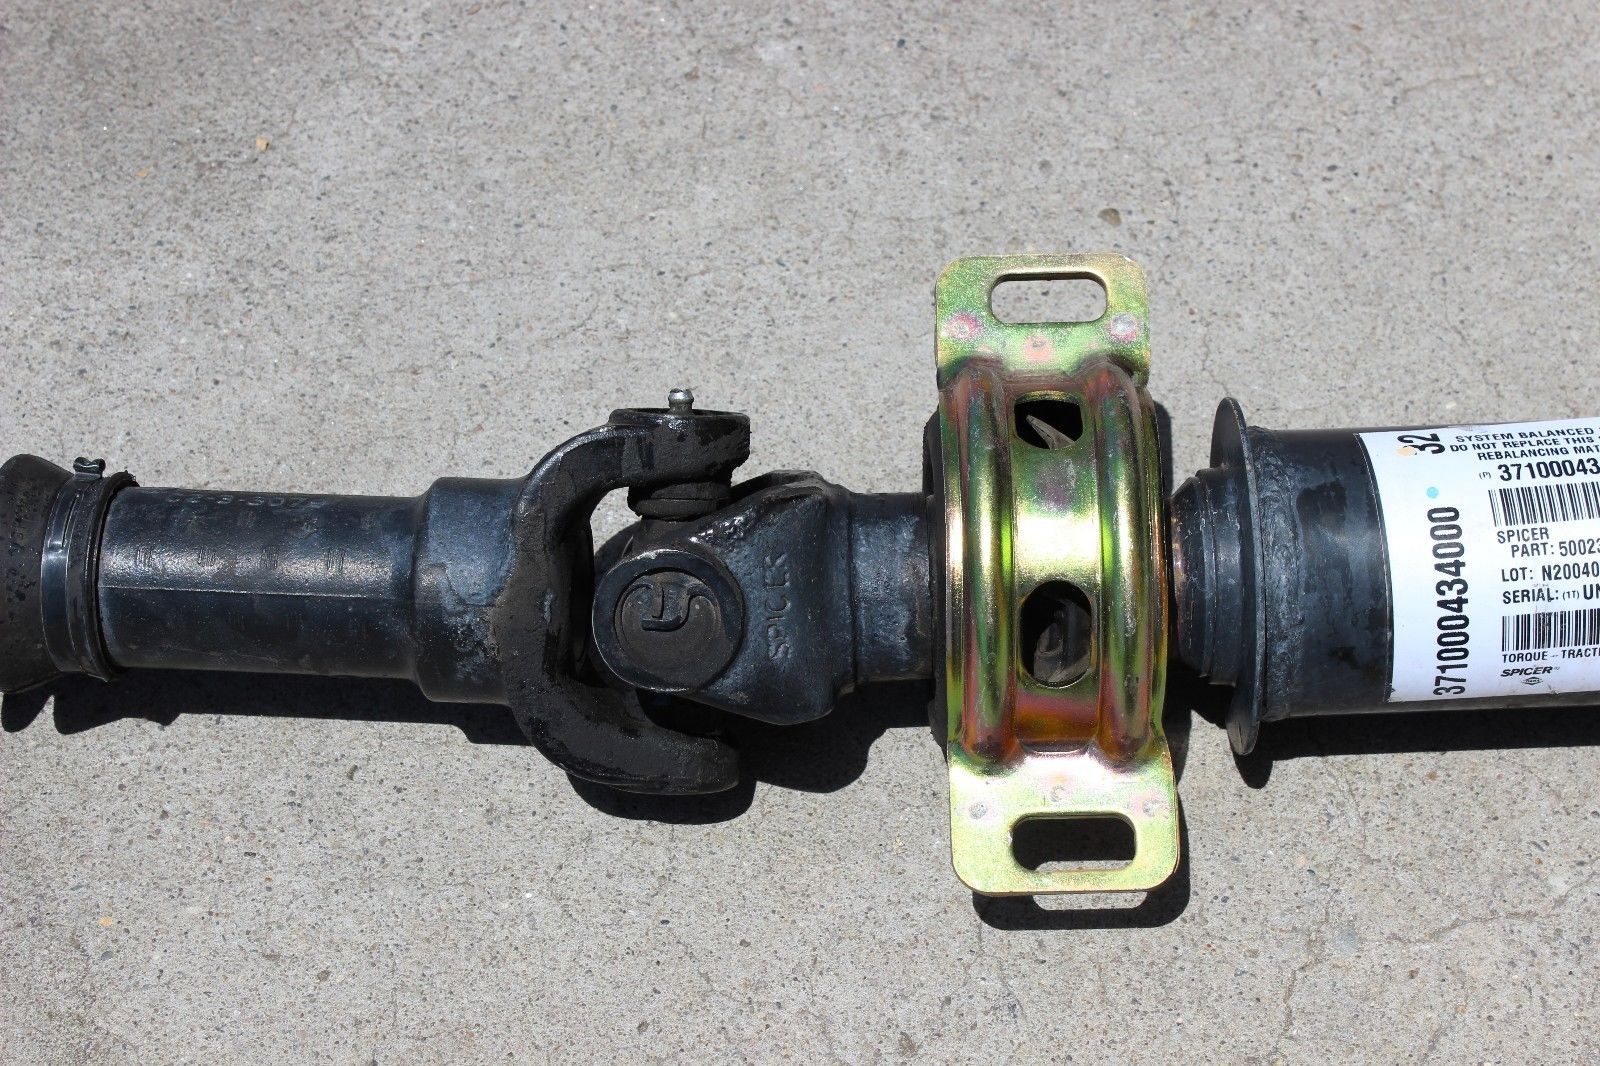 2005 2015 Toyota Tacoma Access Double Cab 44 4wd 40l Auto Rear 2000 4runner Driveshaft 2006 2007 2008 2009 2010 2012 2013 2014